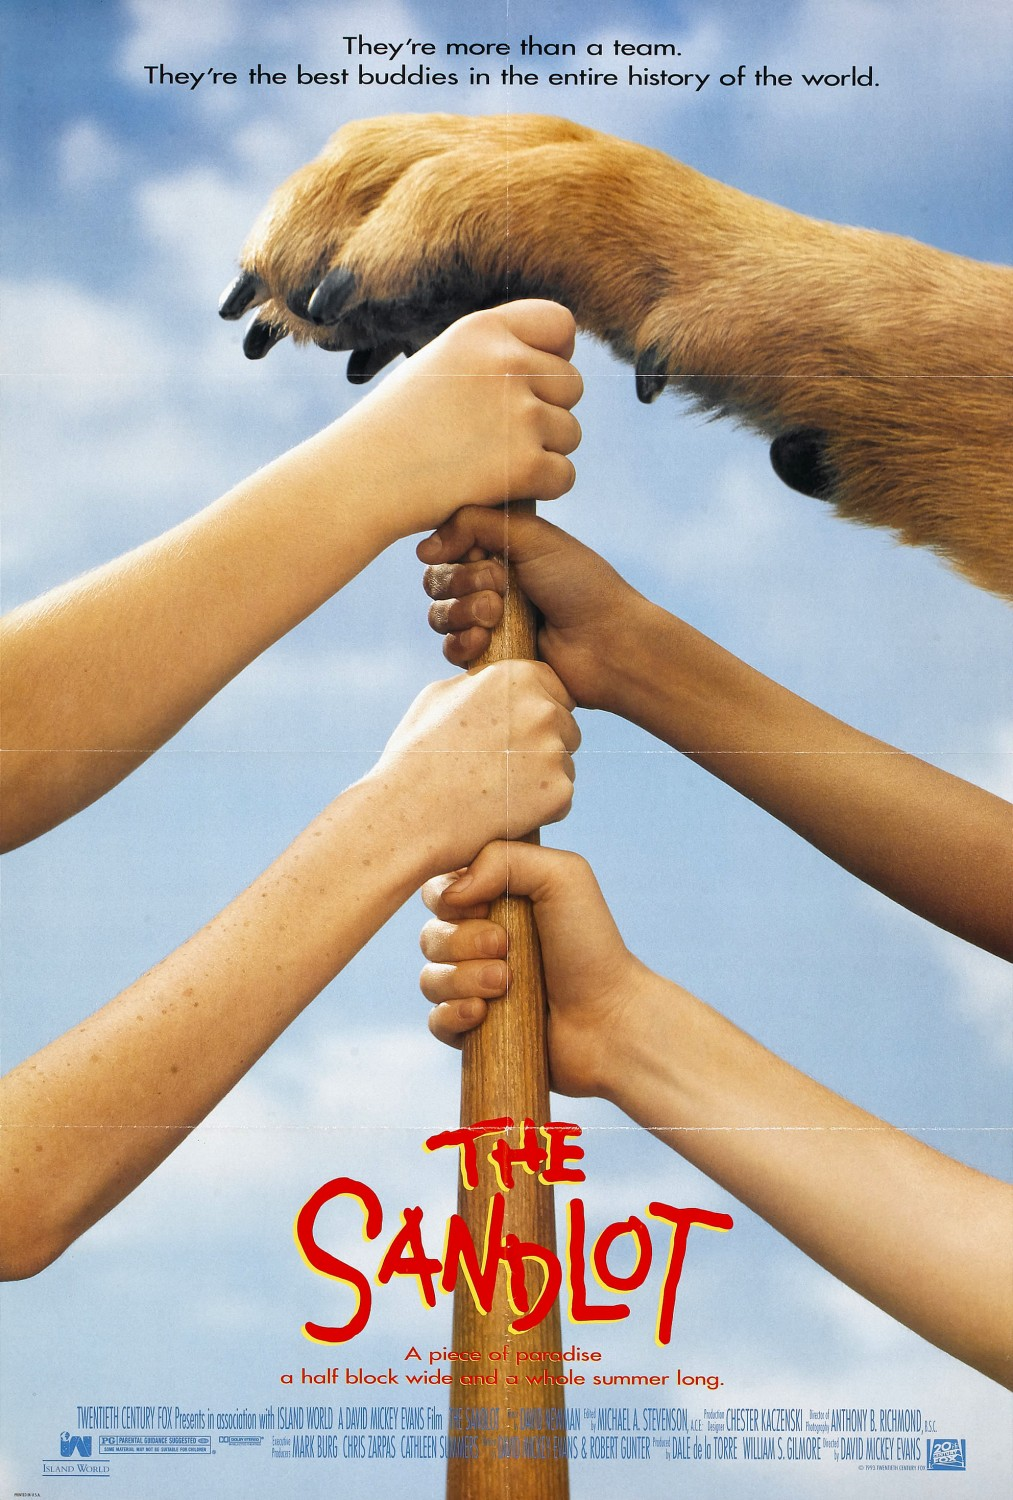 a summary of the movie the sandlot by david evans The sandlot was not exactly a home run upon its release in 1993  as their  director, david mickey evans, to talk about some things even the movie's   james earl jones appeared in a brief but memorable role as mr mertle,.